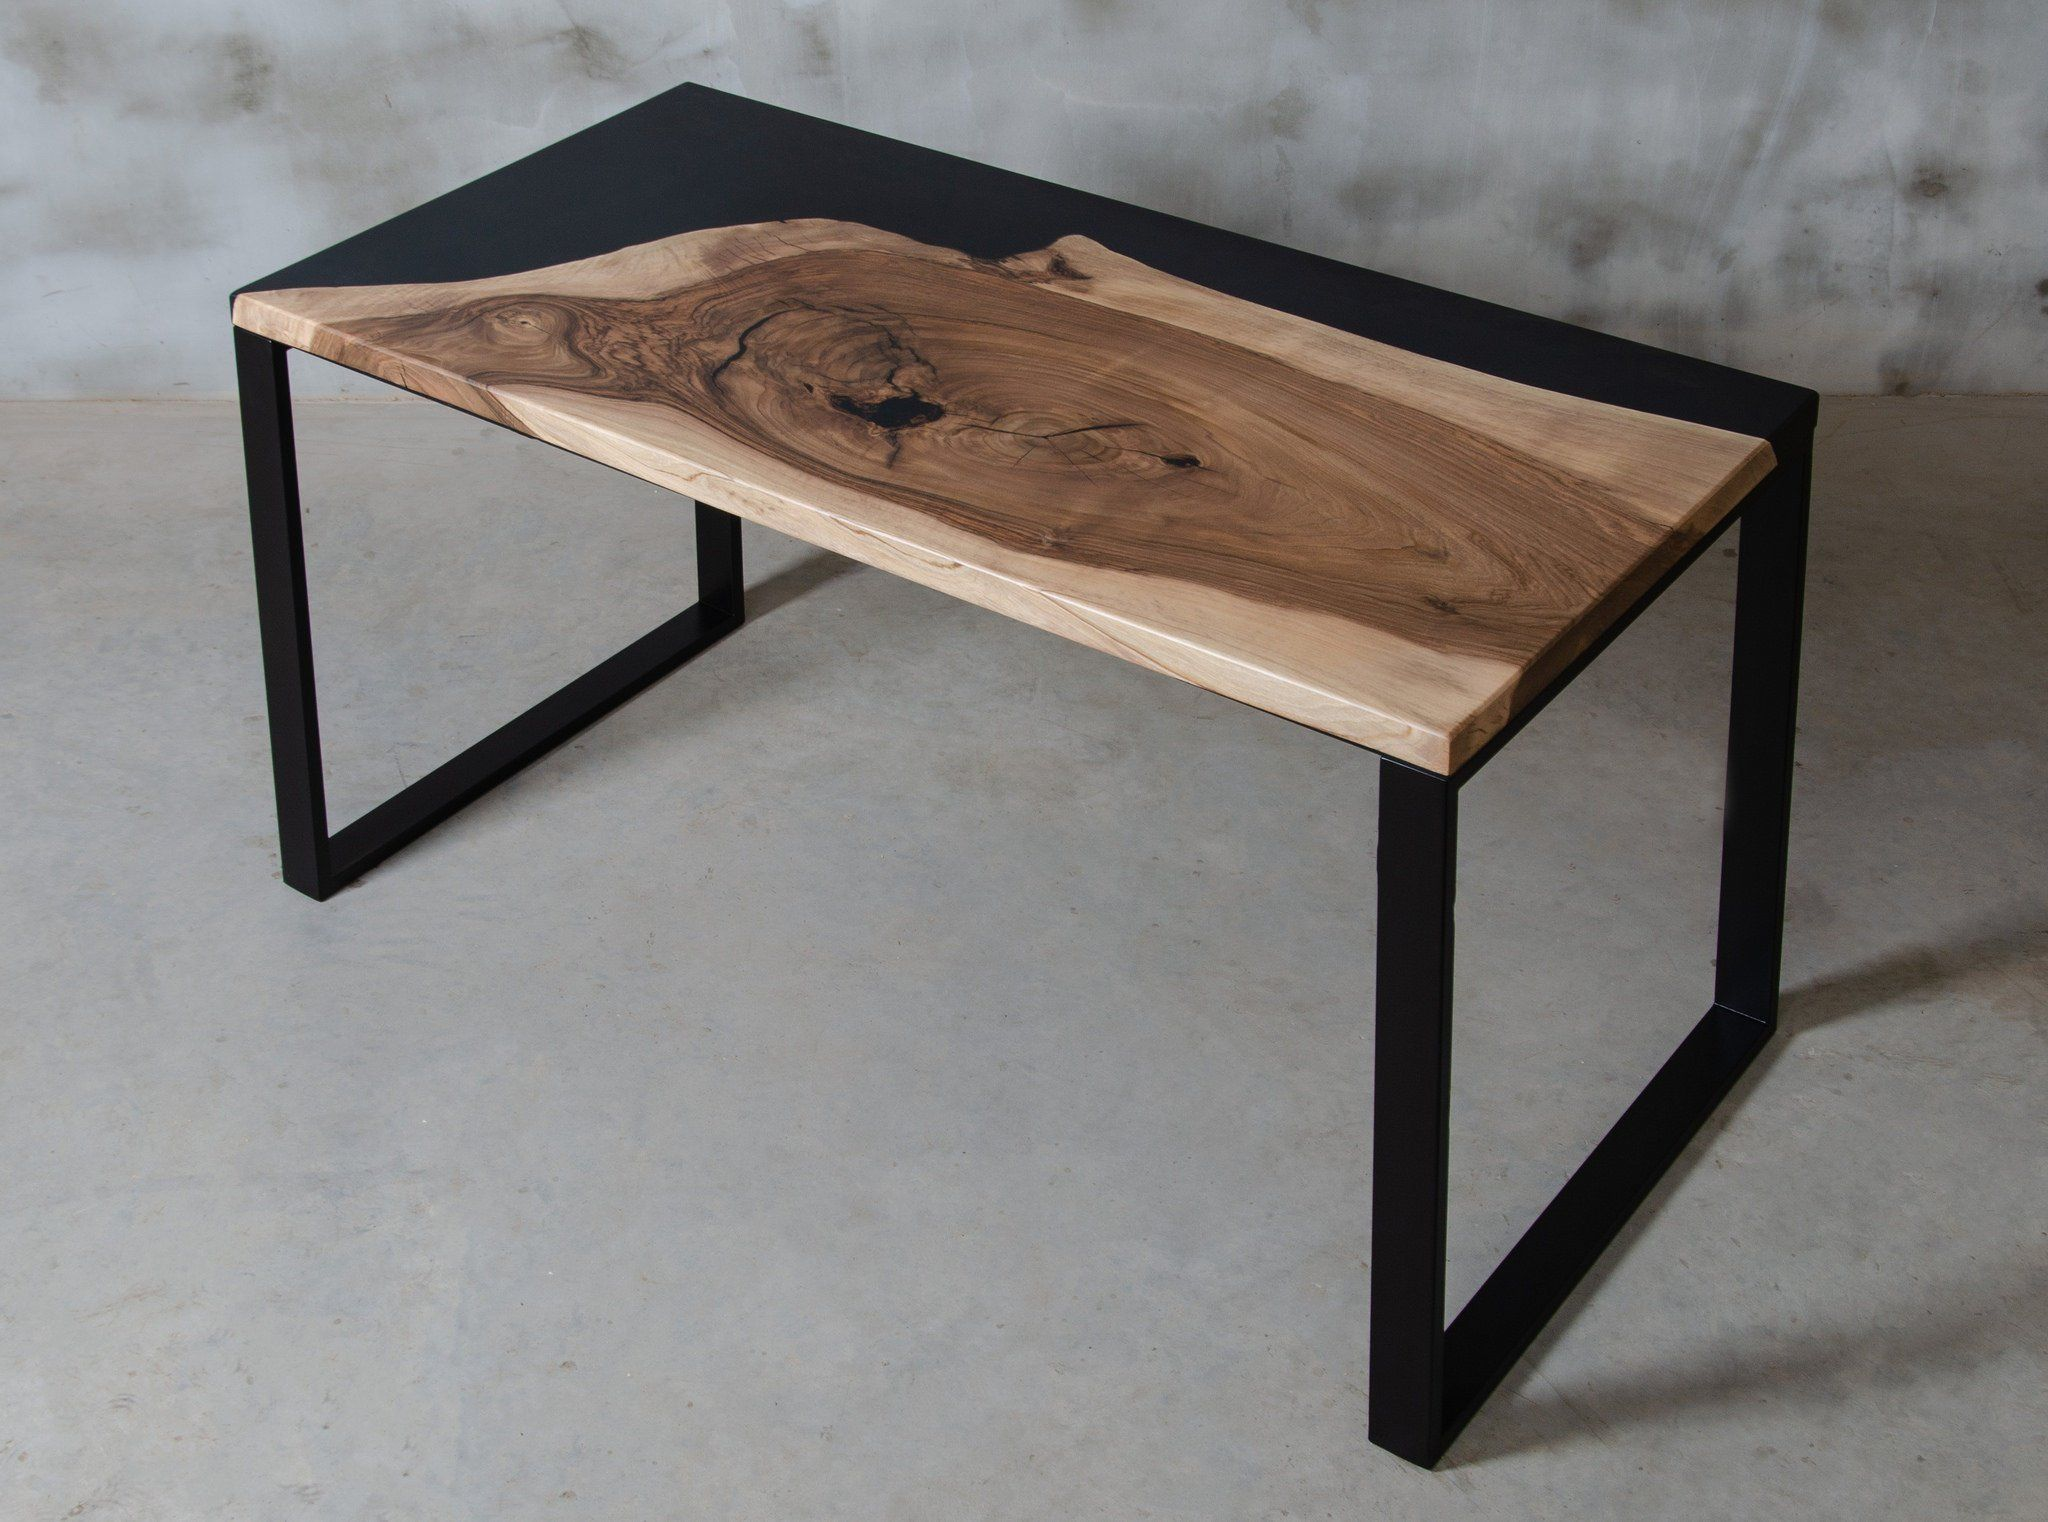 Wooden Desk Made Of One Slab European Walnut Black Resin Table